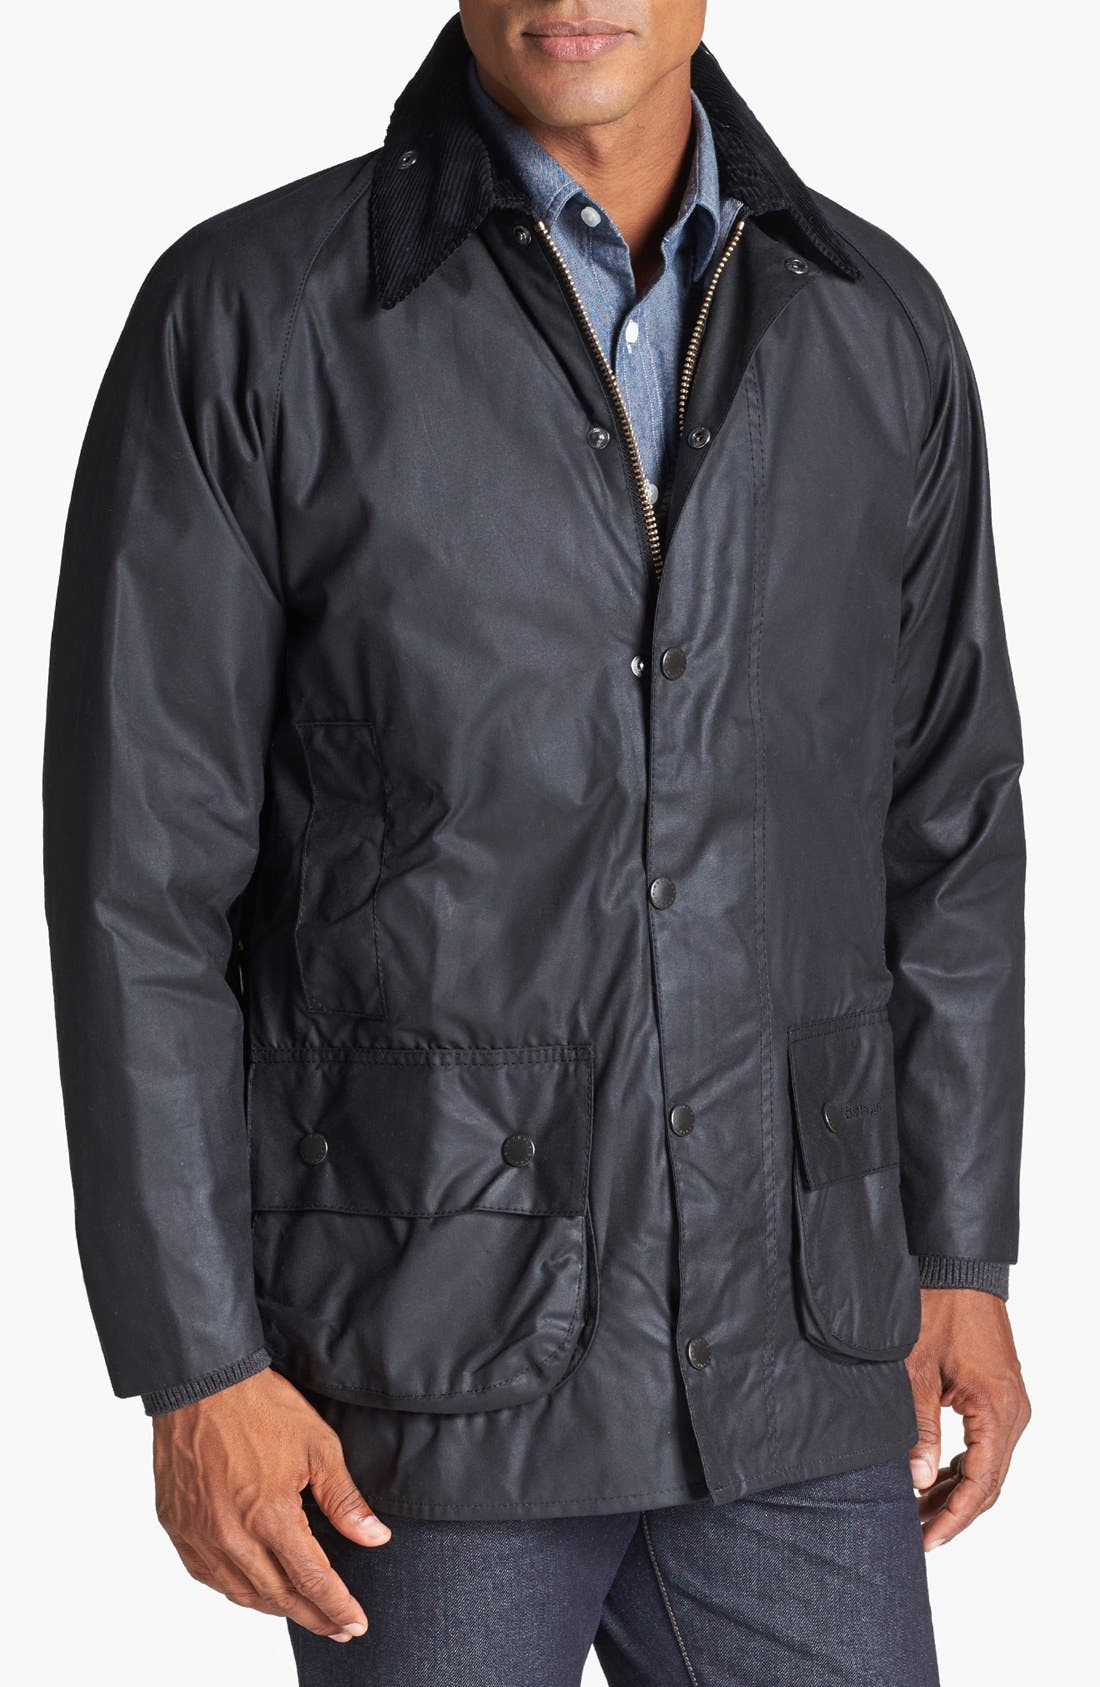 Alternate Image 1 Selected - Barbour 'Beaufort' Regular Fit Weatherproof Waxed Jacket